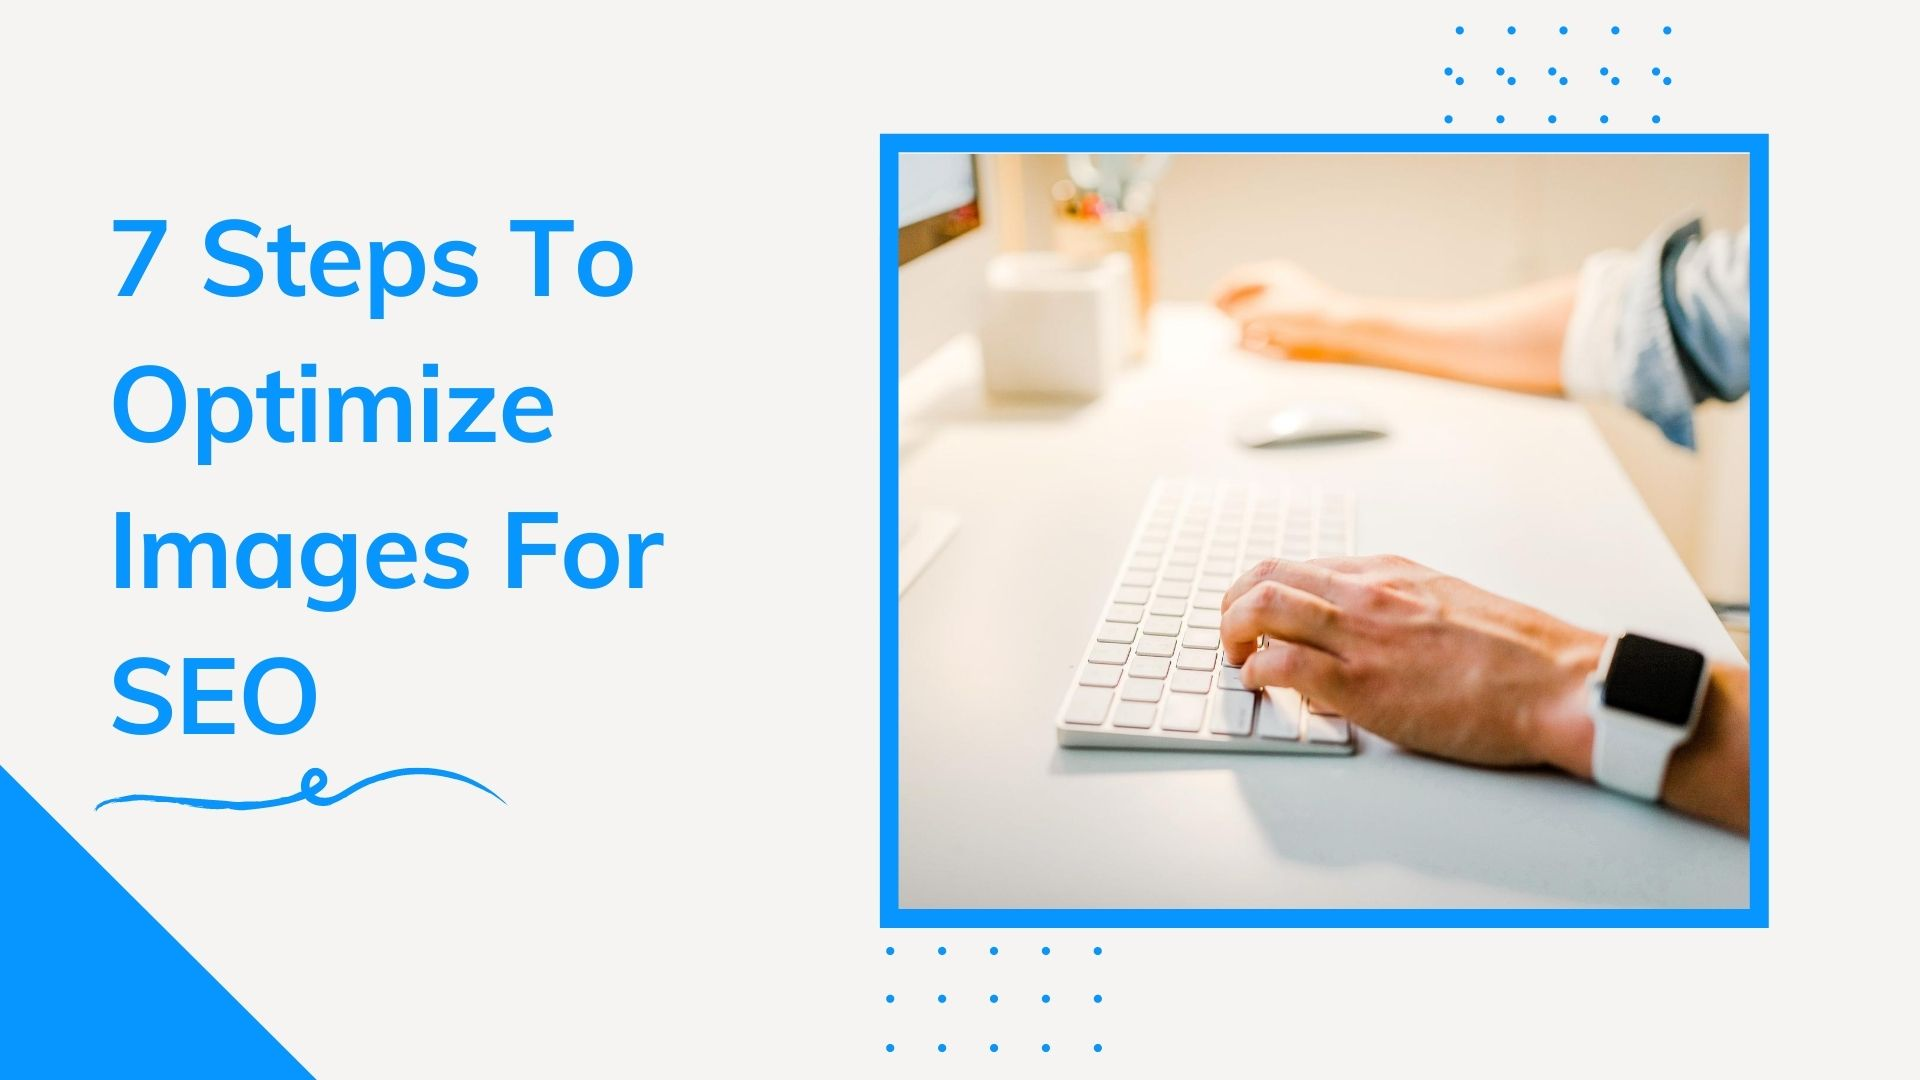 7 Steps To Optimize Images For SEO